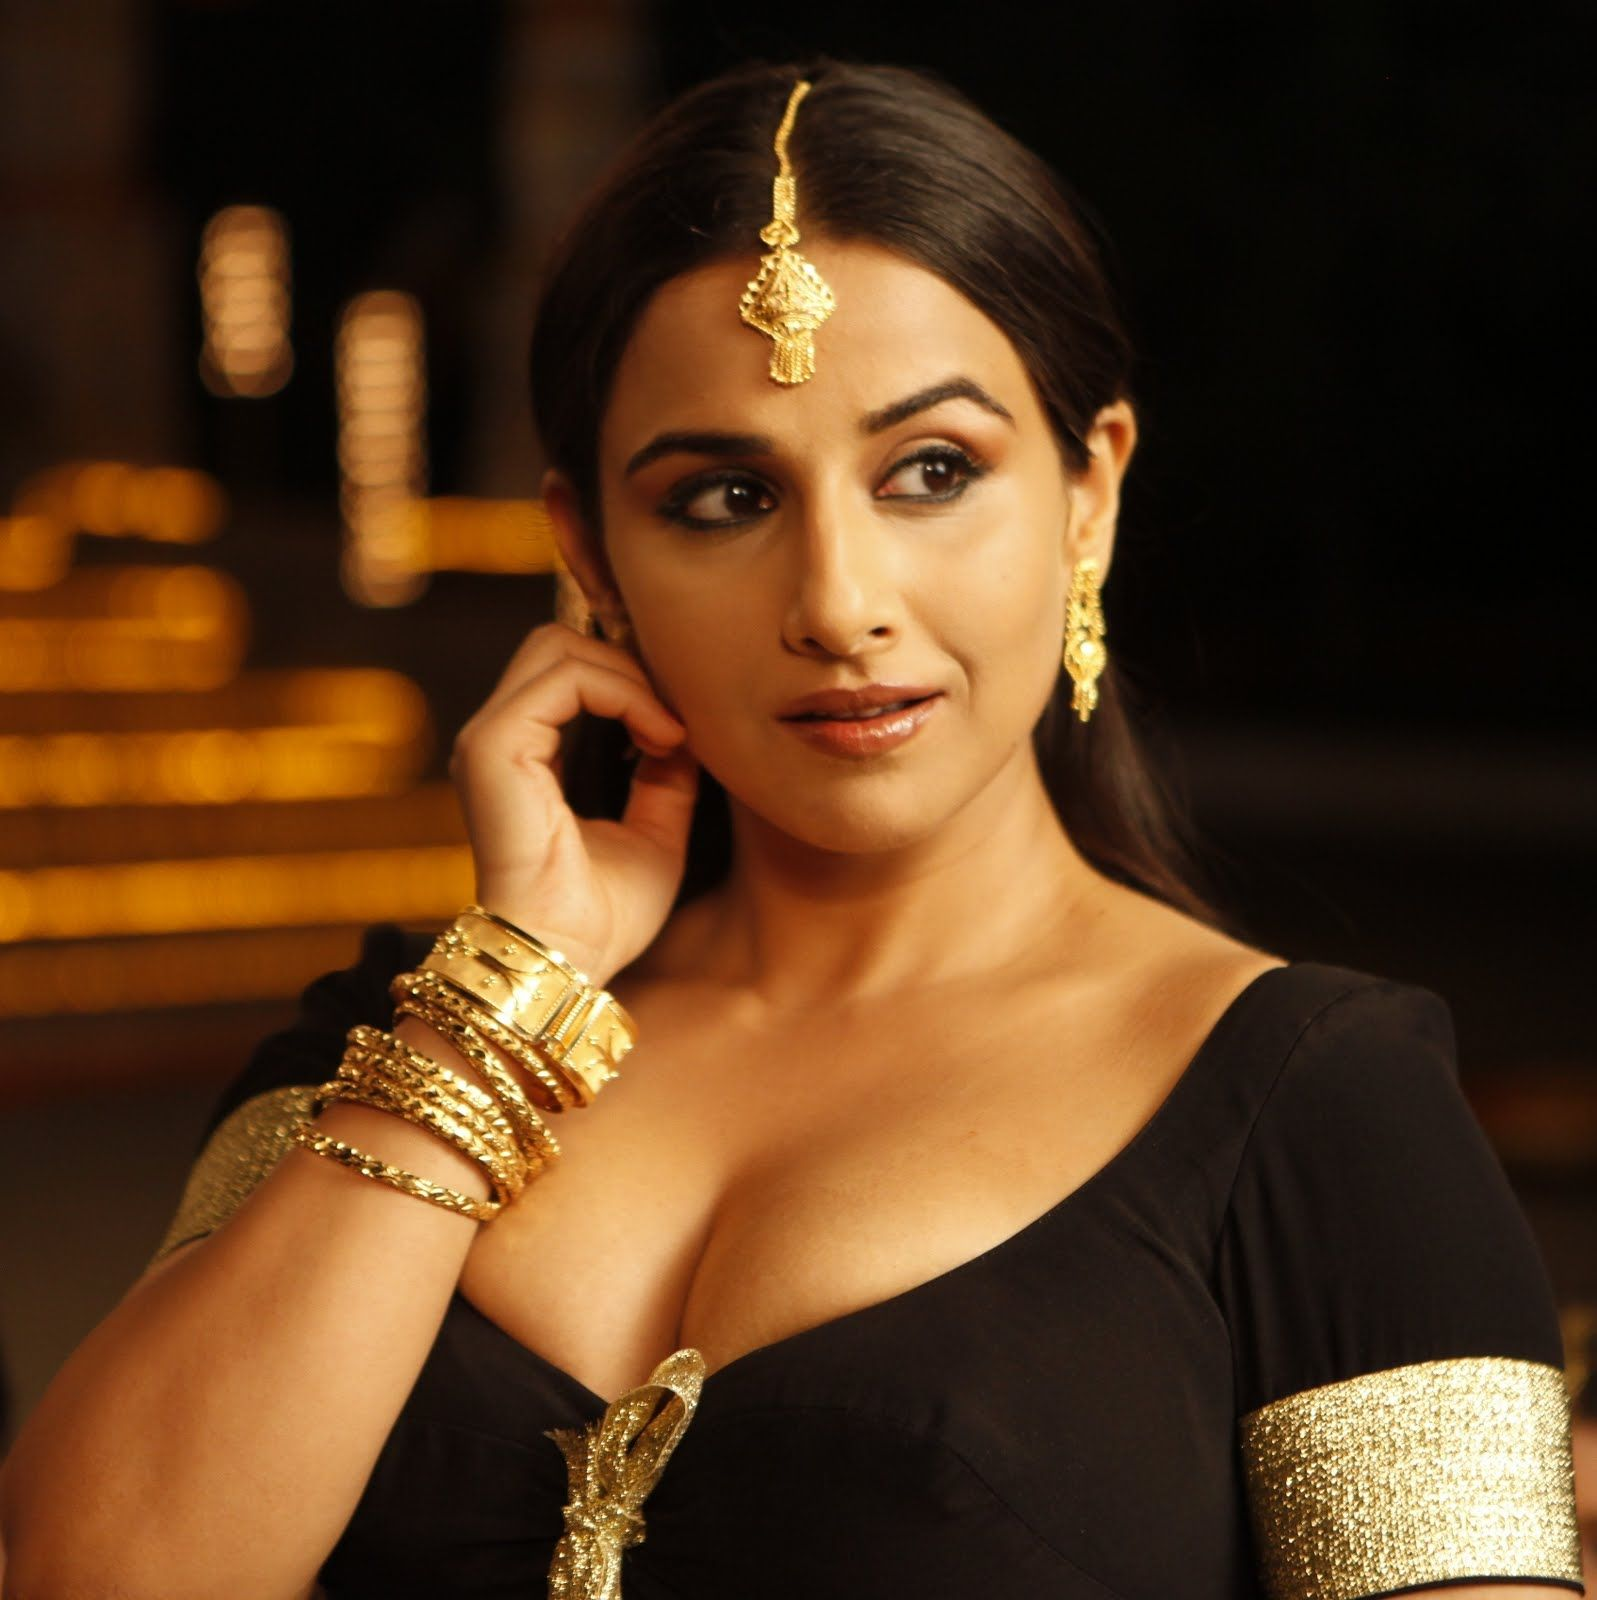 vidya balan | beautiful faces #1 | pinterest | actresses, hot